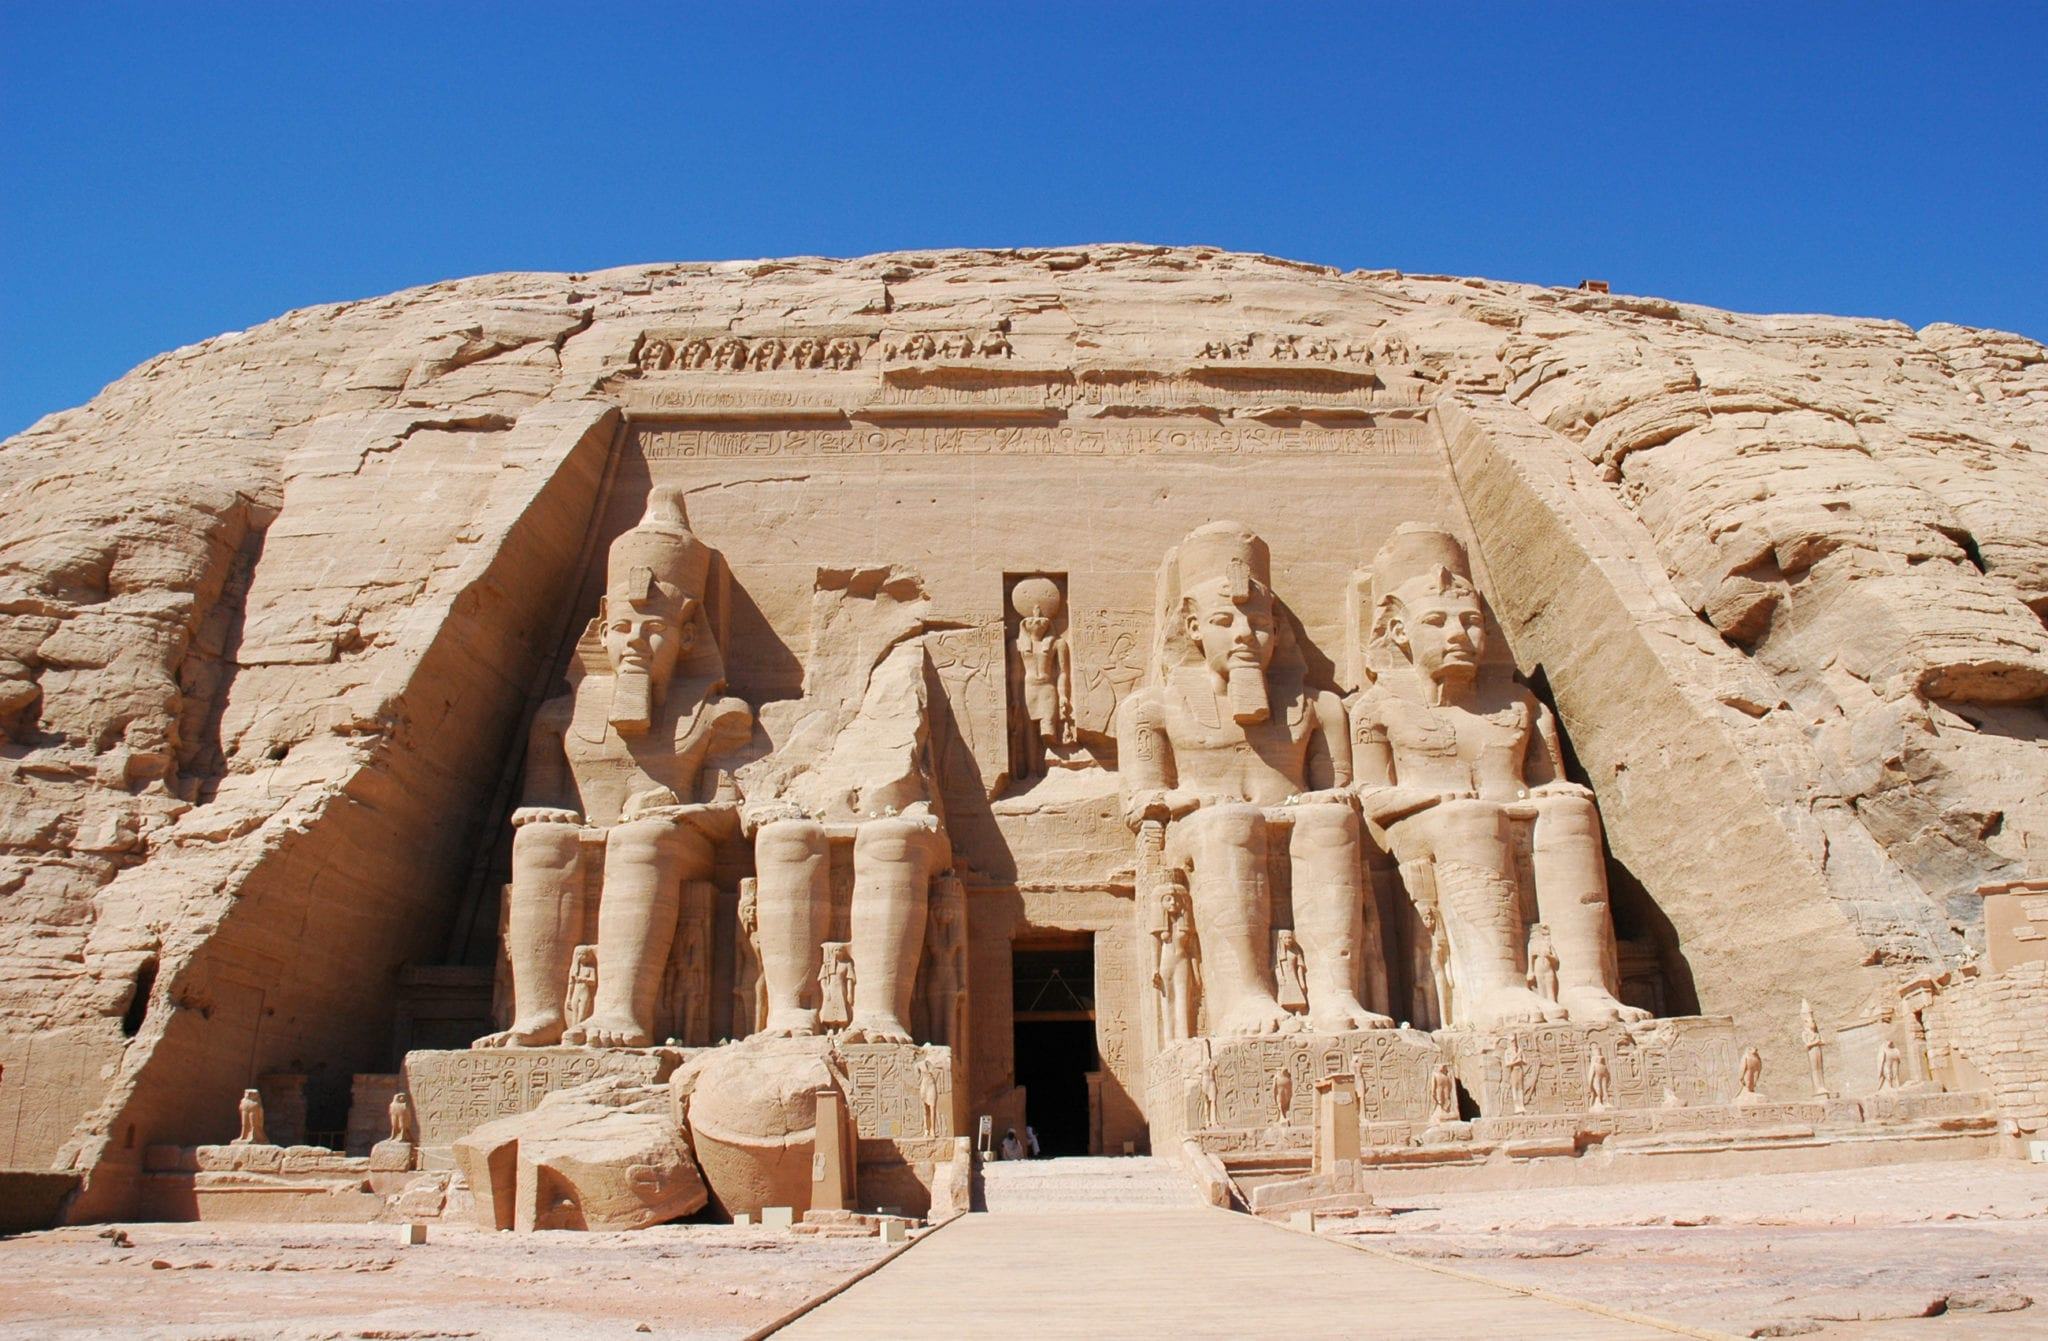 Abu Simbel: Vision and Ingenuity Across the Millennia